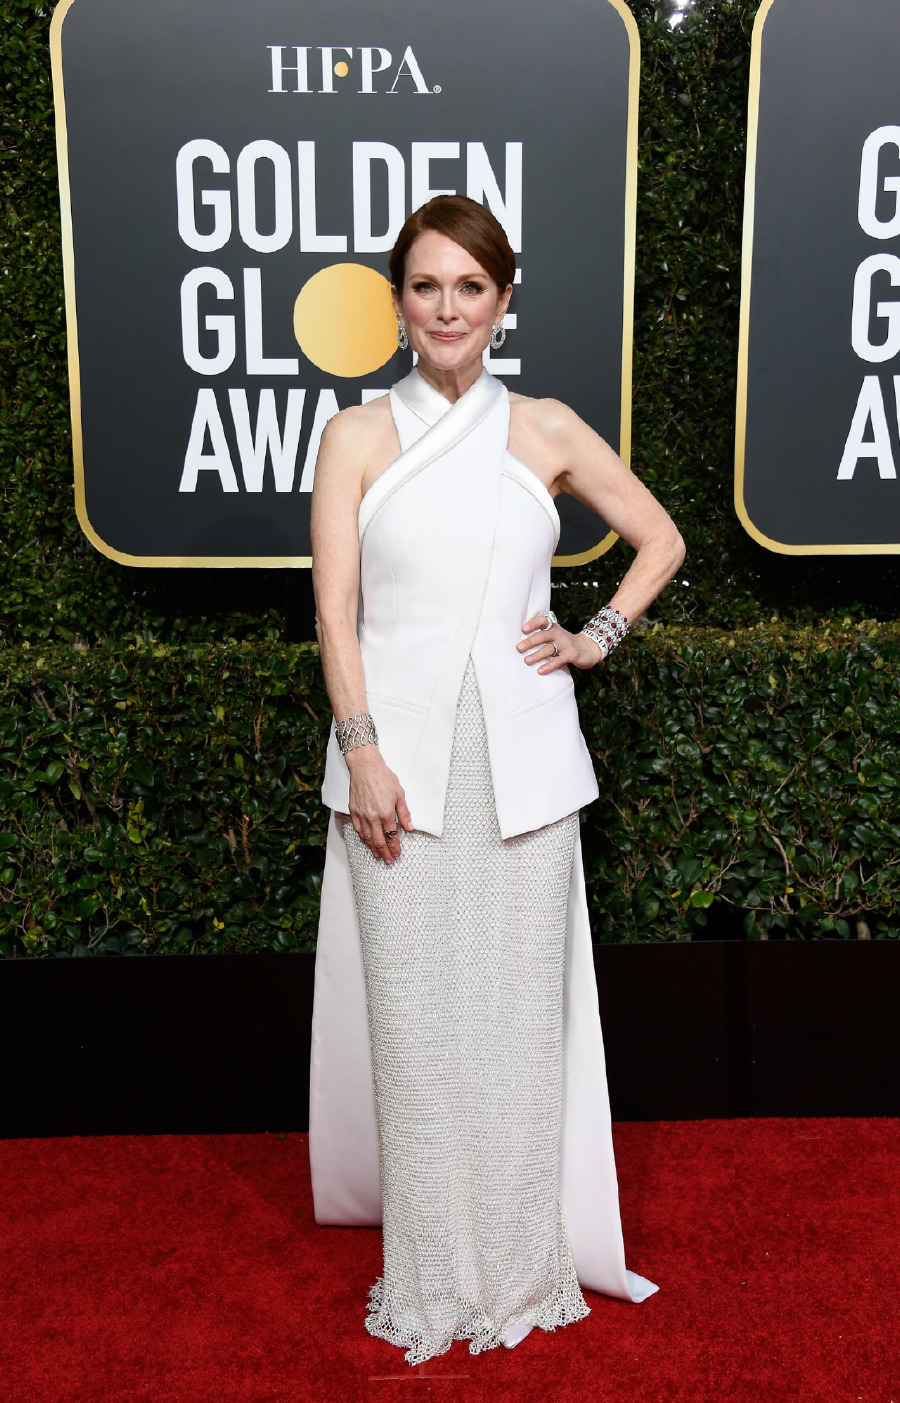 Julianne Moore, Elbise: Givenchy